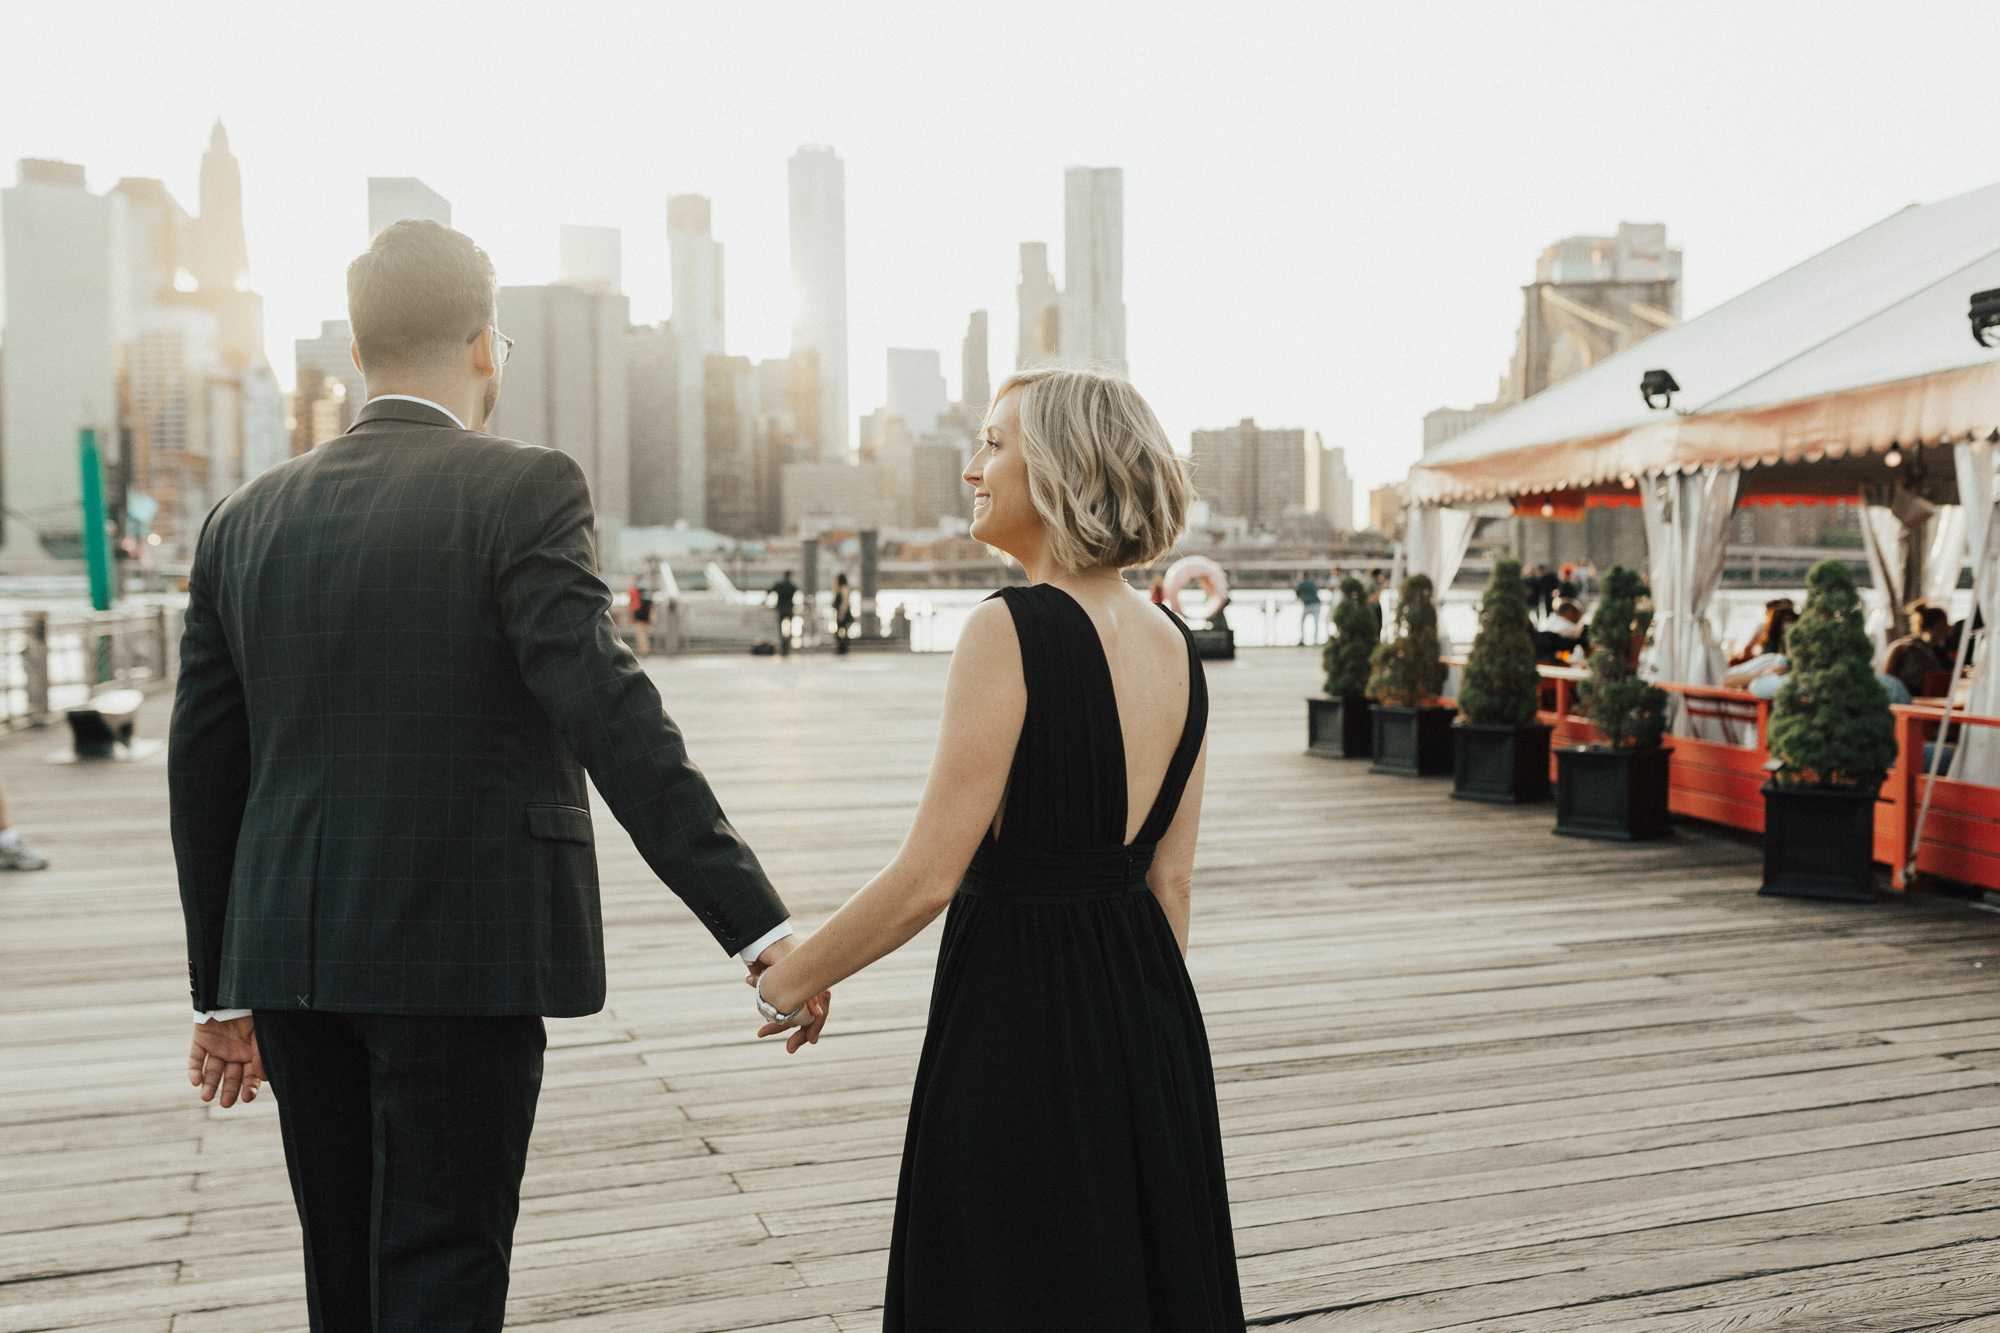 brooklyn_nyc_engagement_photography-45-of-83.jpg